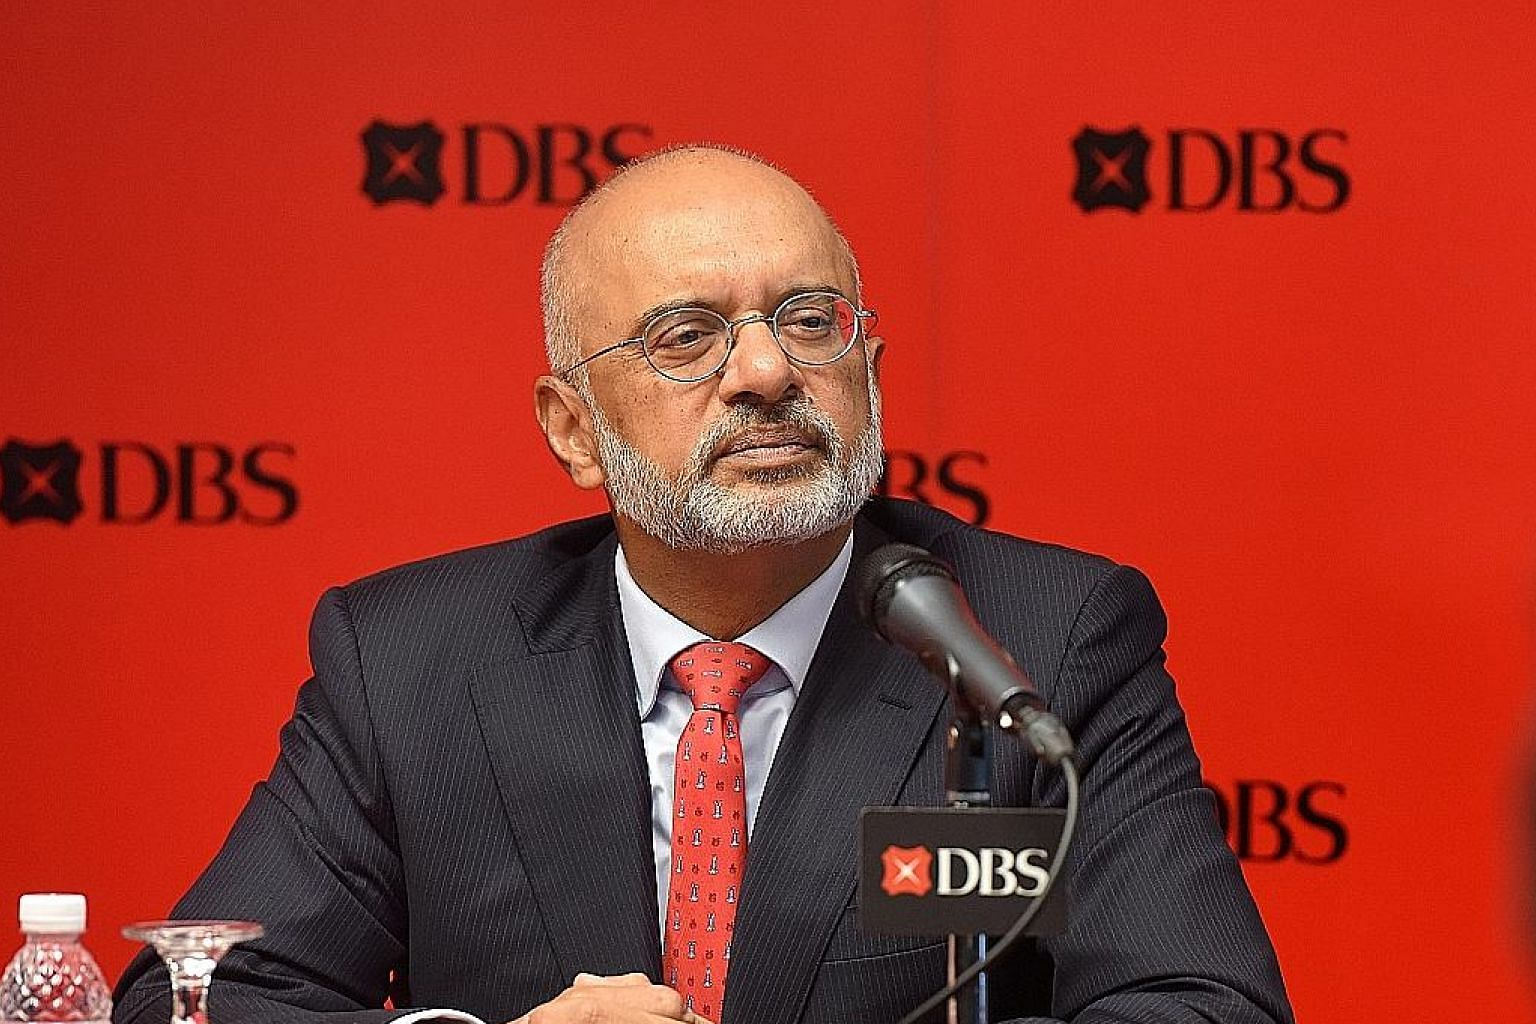 Many of DBS' customers use the digital form to engage with the bank, said Mr Piyush Gupta.